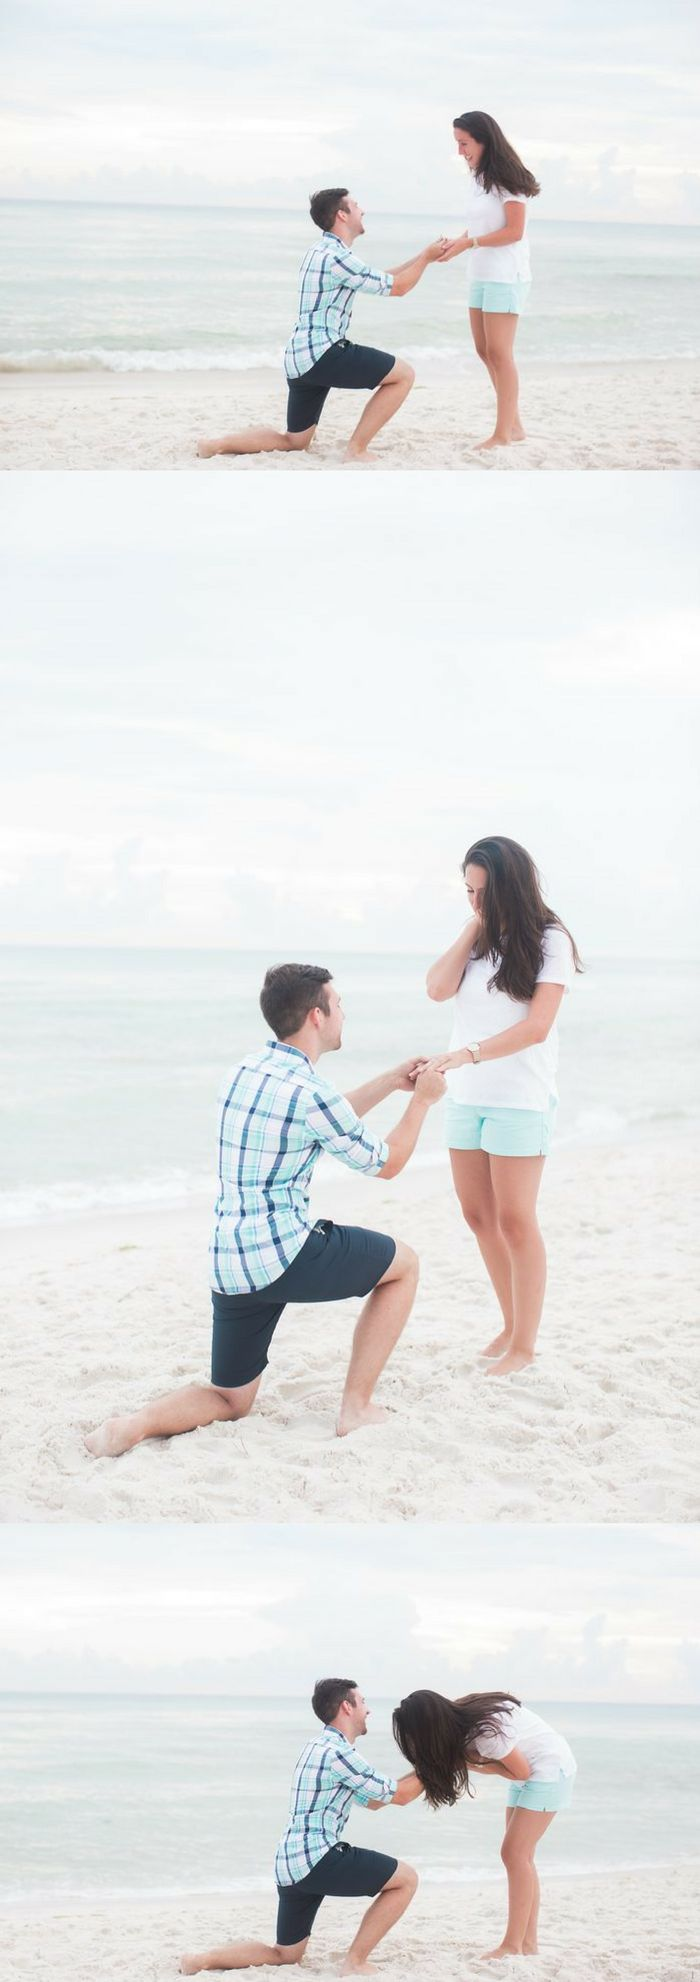 When he got on one knee, she couldn't believe what was happening! It was such an adorable beach proposal.